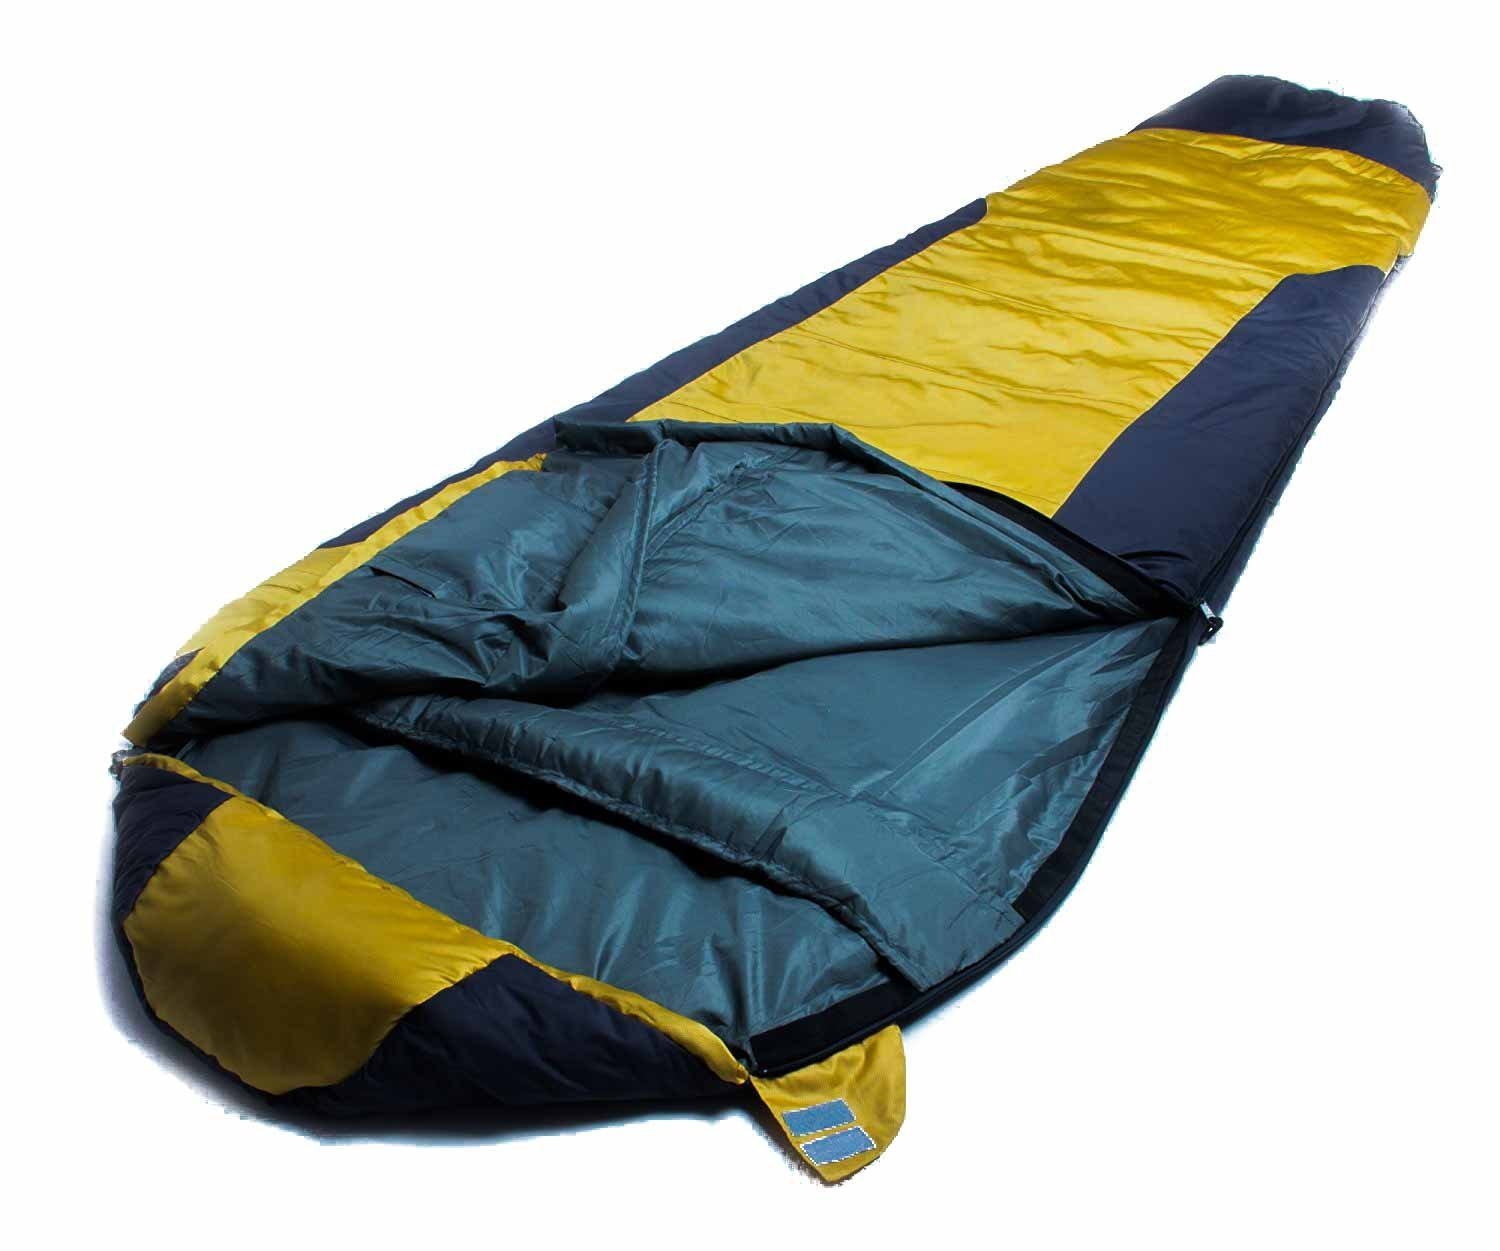 ... Madera Outdoor Sleeping Bag Backpacking Sleeping Bag 23° F madera  outdoor hammock companies that plant ... b90b5f52a099